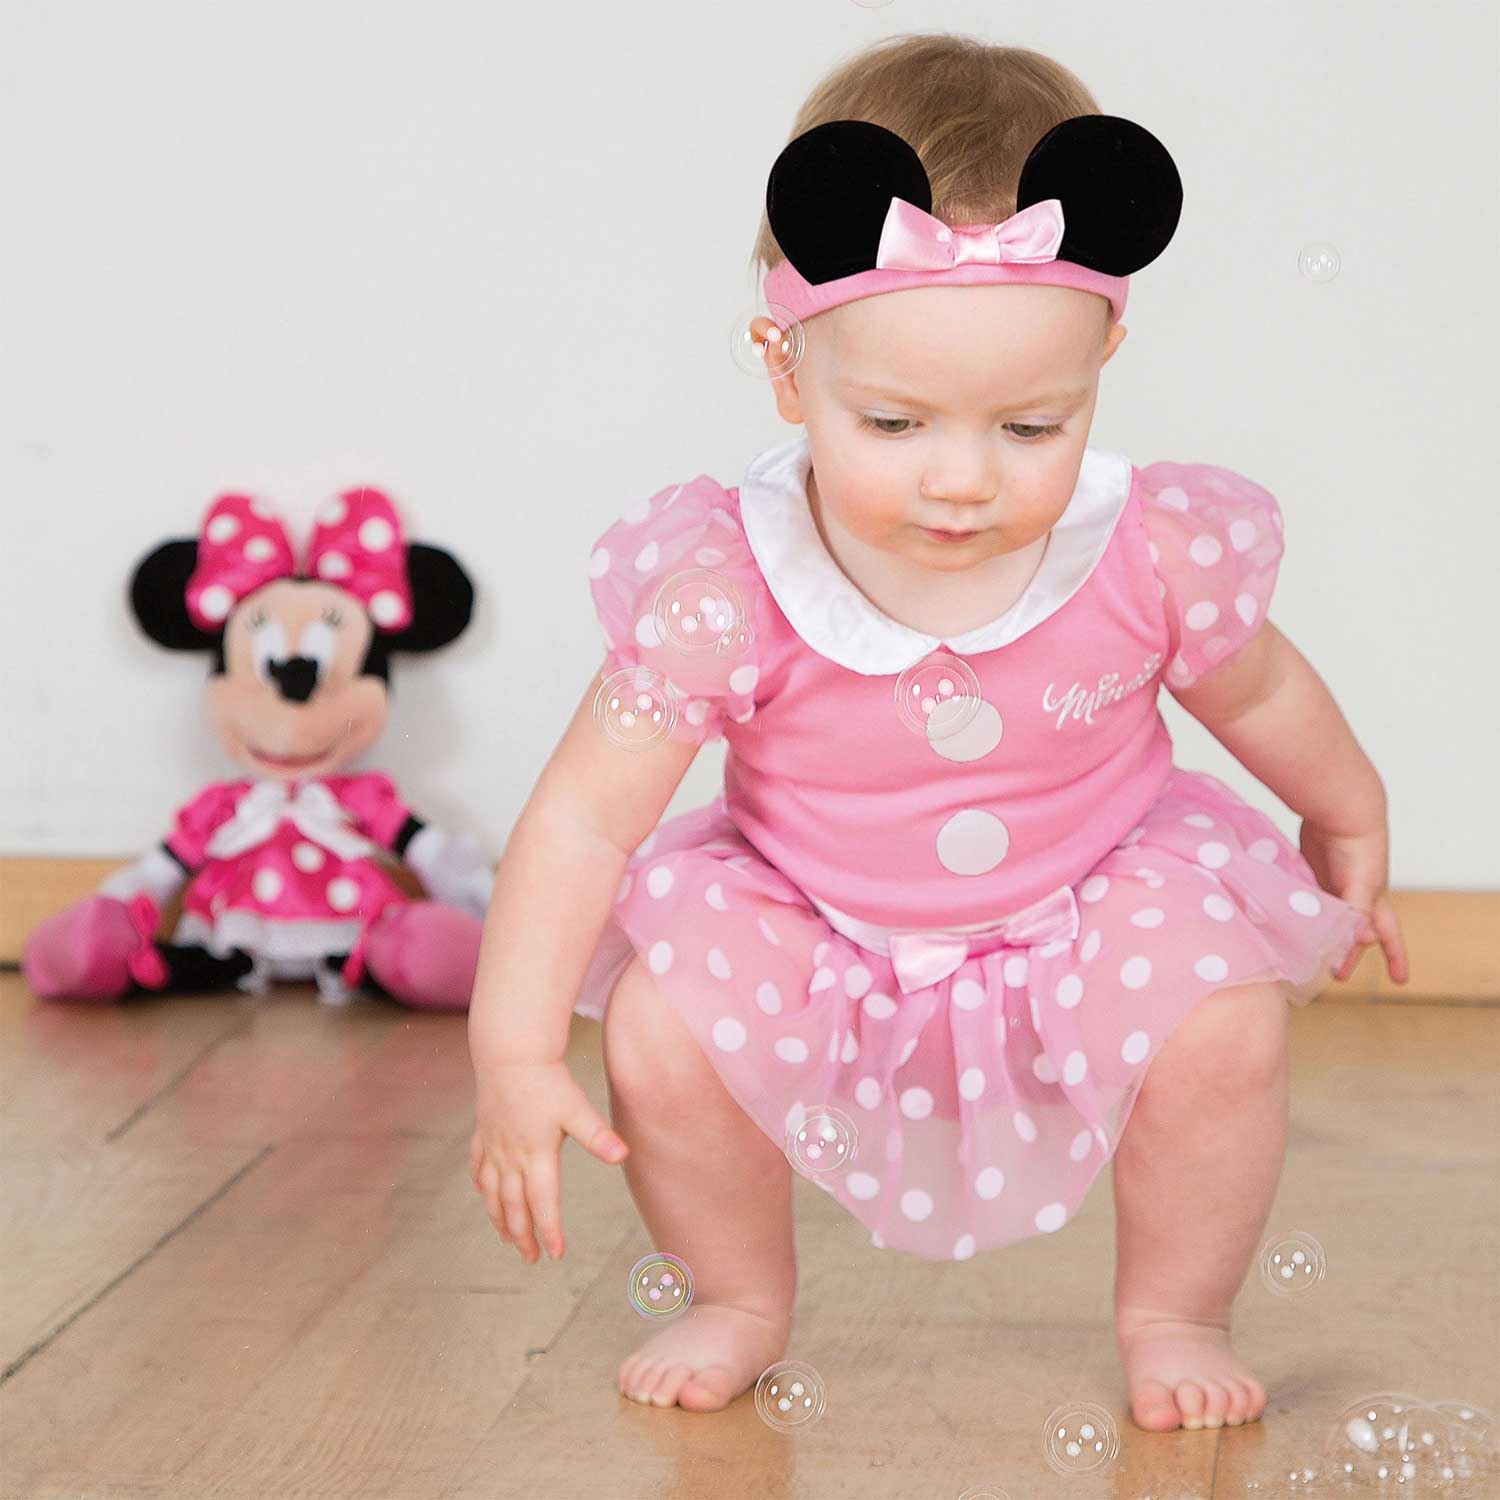 44820b6ff Disney Minnie Mouse Bodysuit with Headband - Age 3-6 Months - 1 PC ...